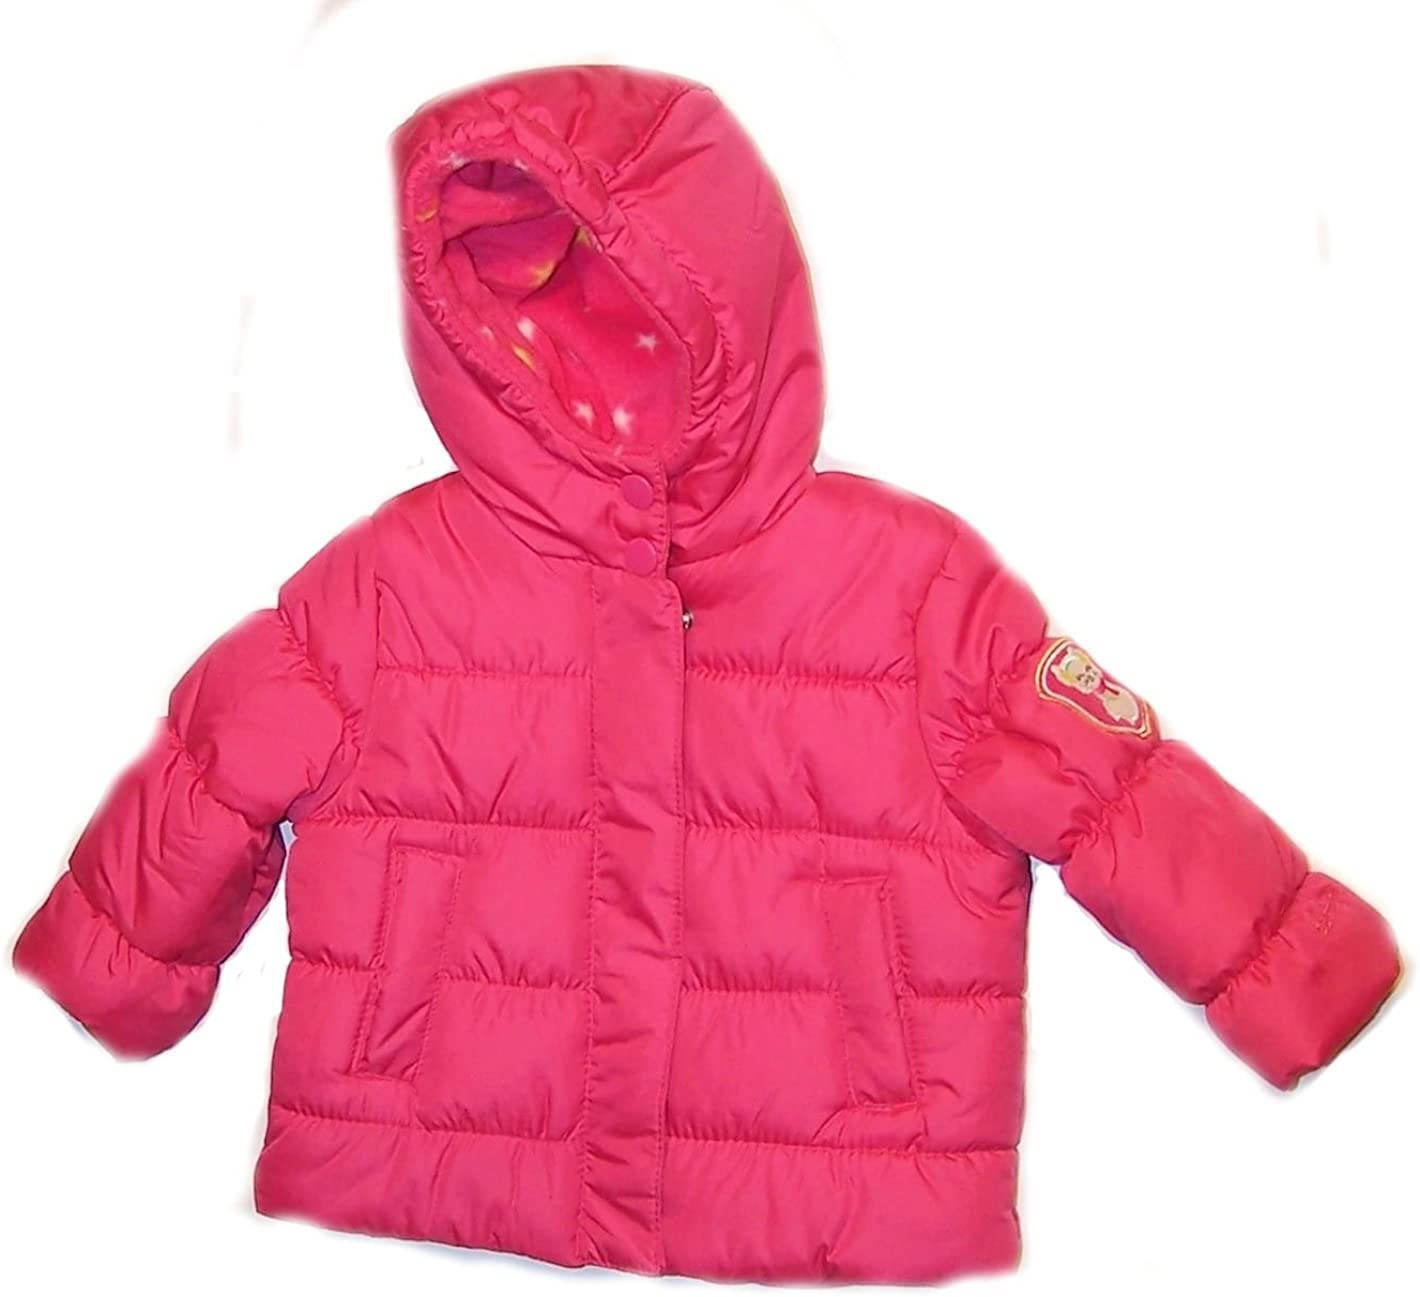 Carters Baby Girls Kitty Puffer Jacket 12m, Pink